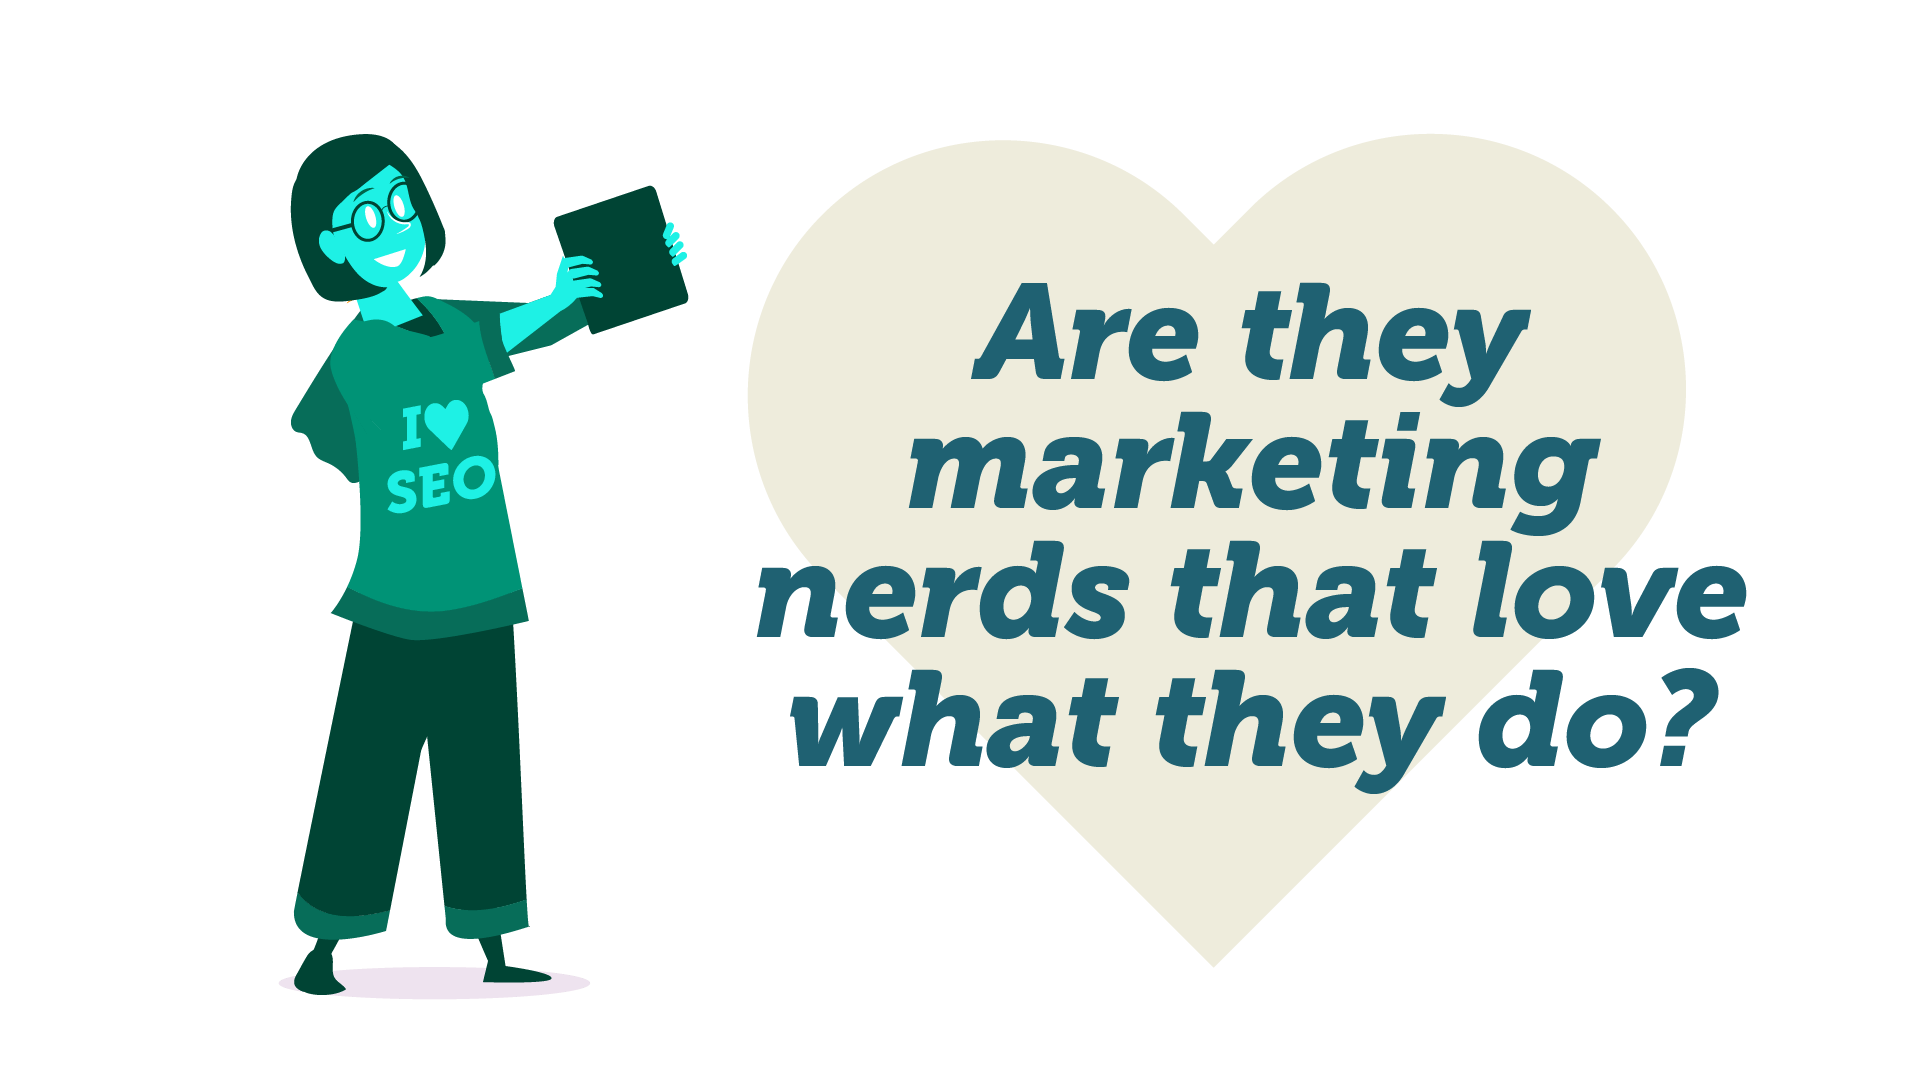 marketing nerds that love what they do - factors to consider when before you choose a marketing consultant image of a marketer wearing a t-shirt that reads 'I love SEO'